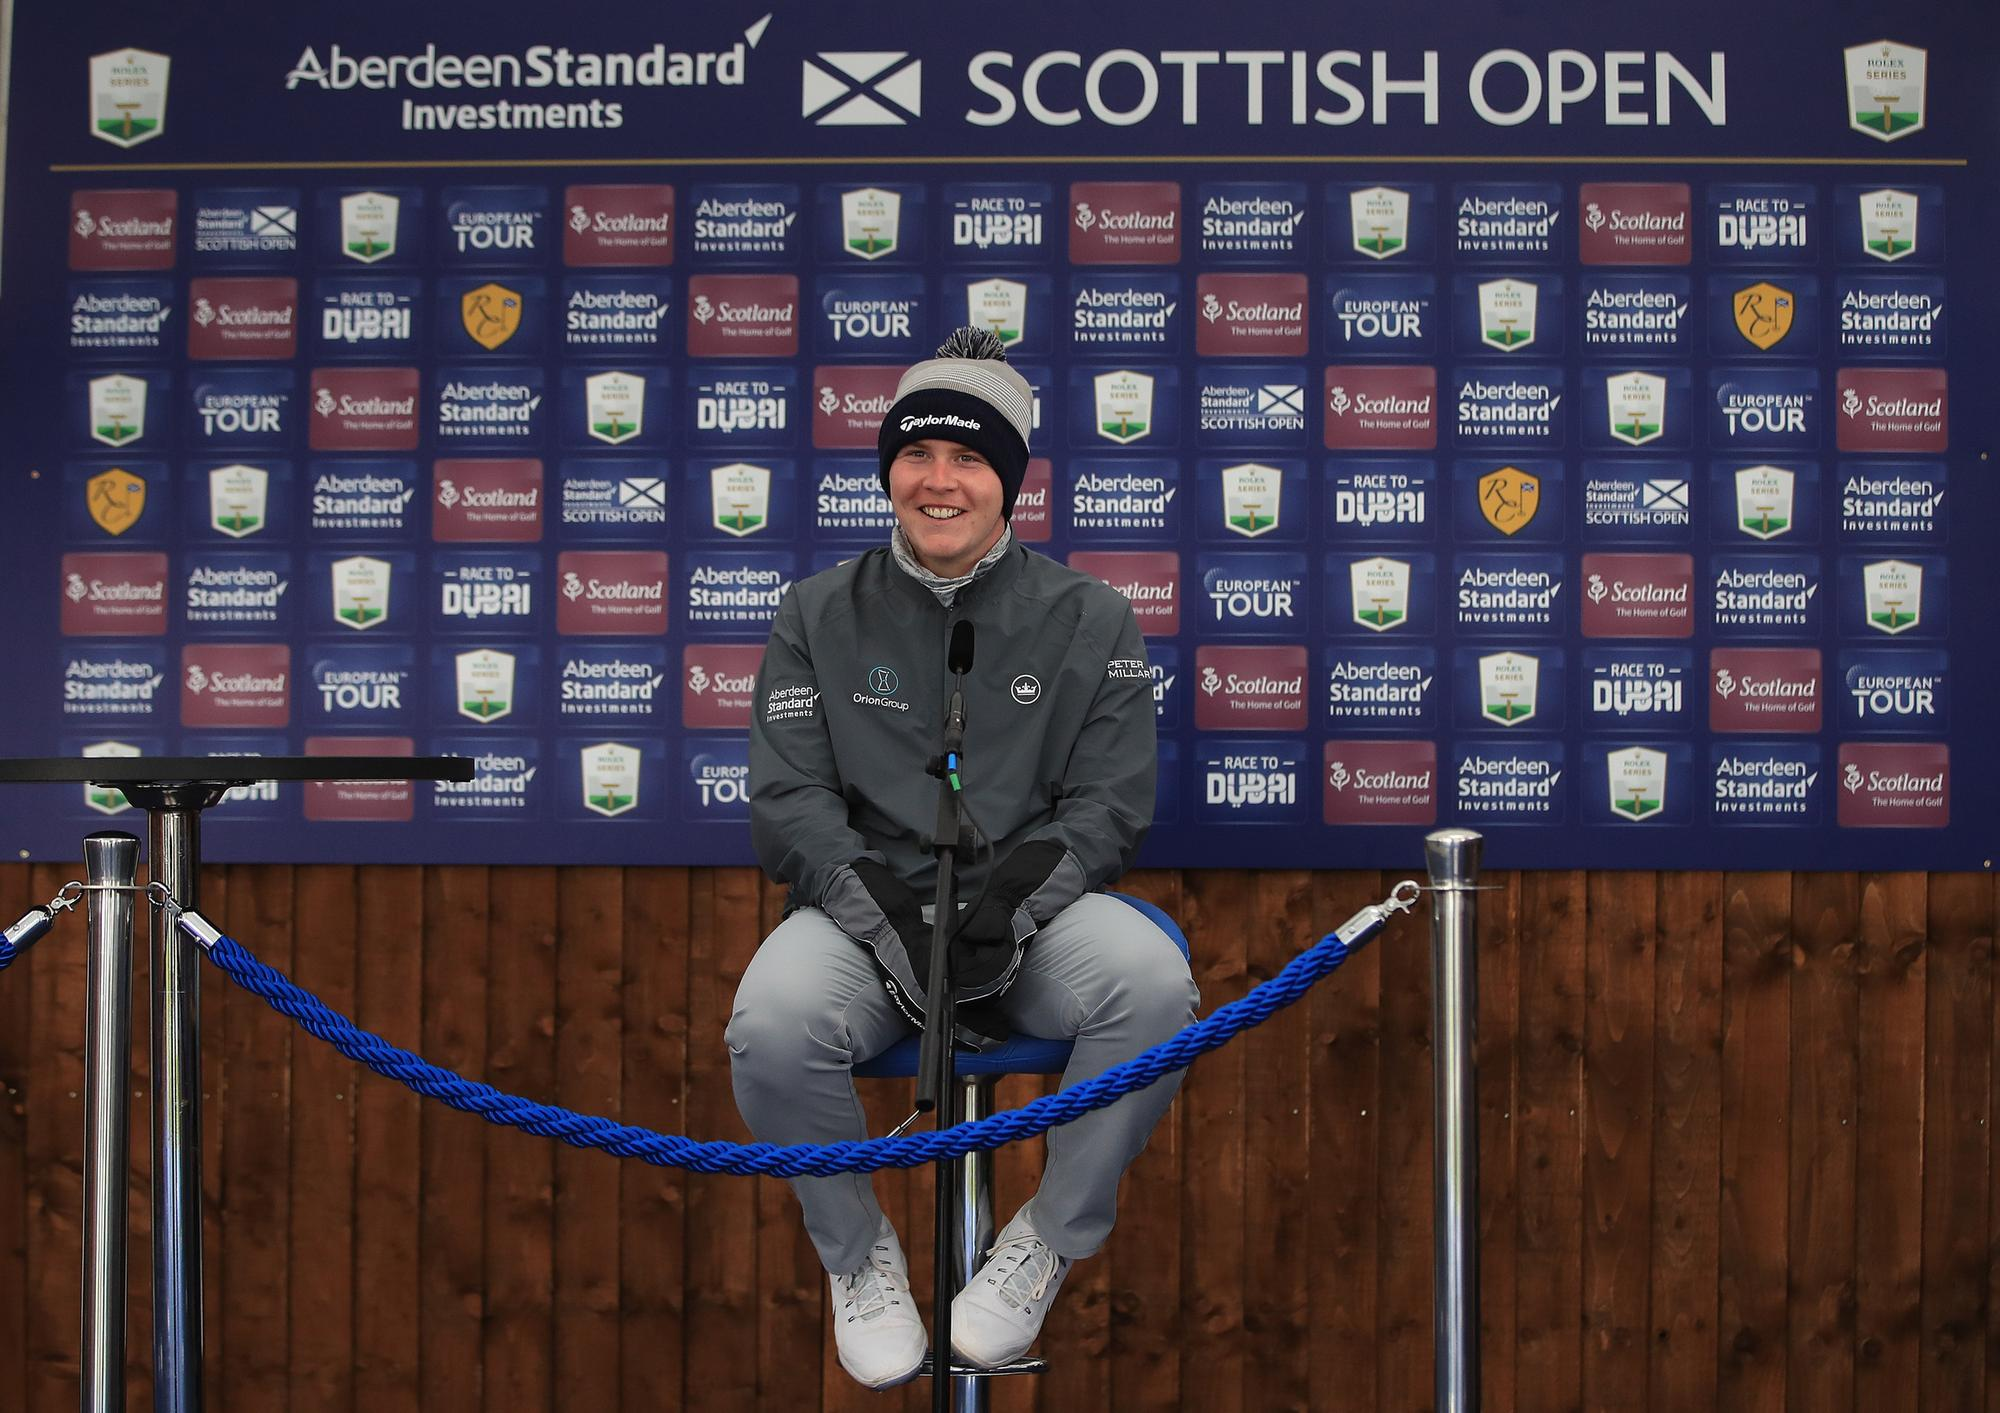 Bob MacIntyre makes 'business' decision with caddie change